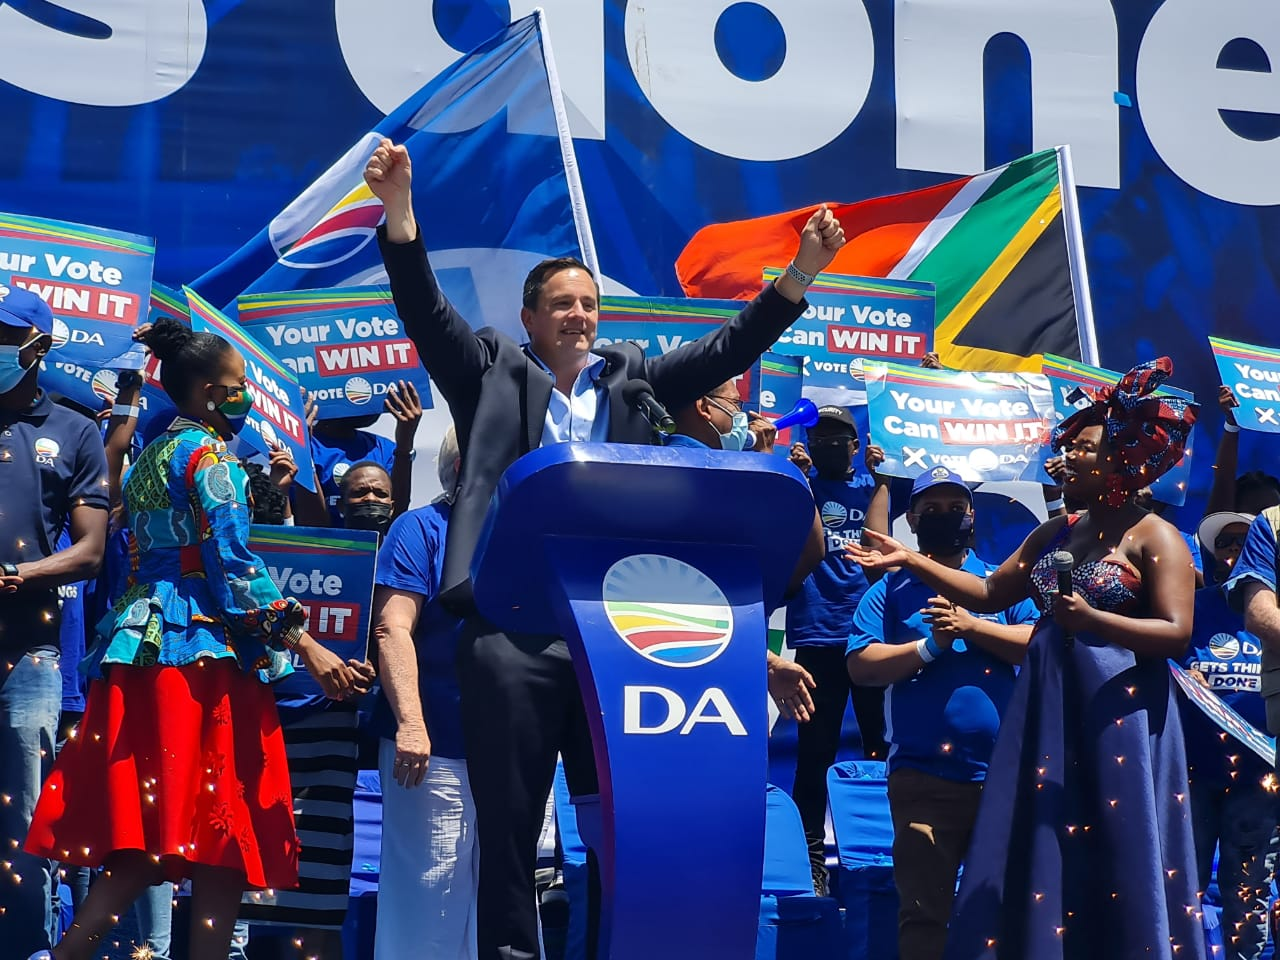 Vote for the only party that gets things done. Vote DA!